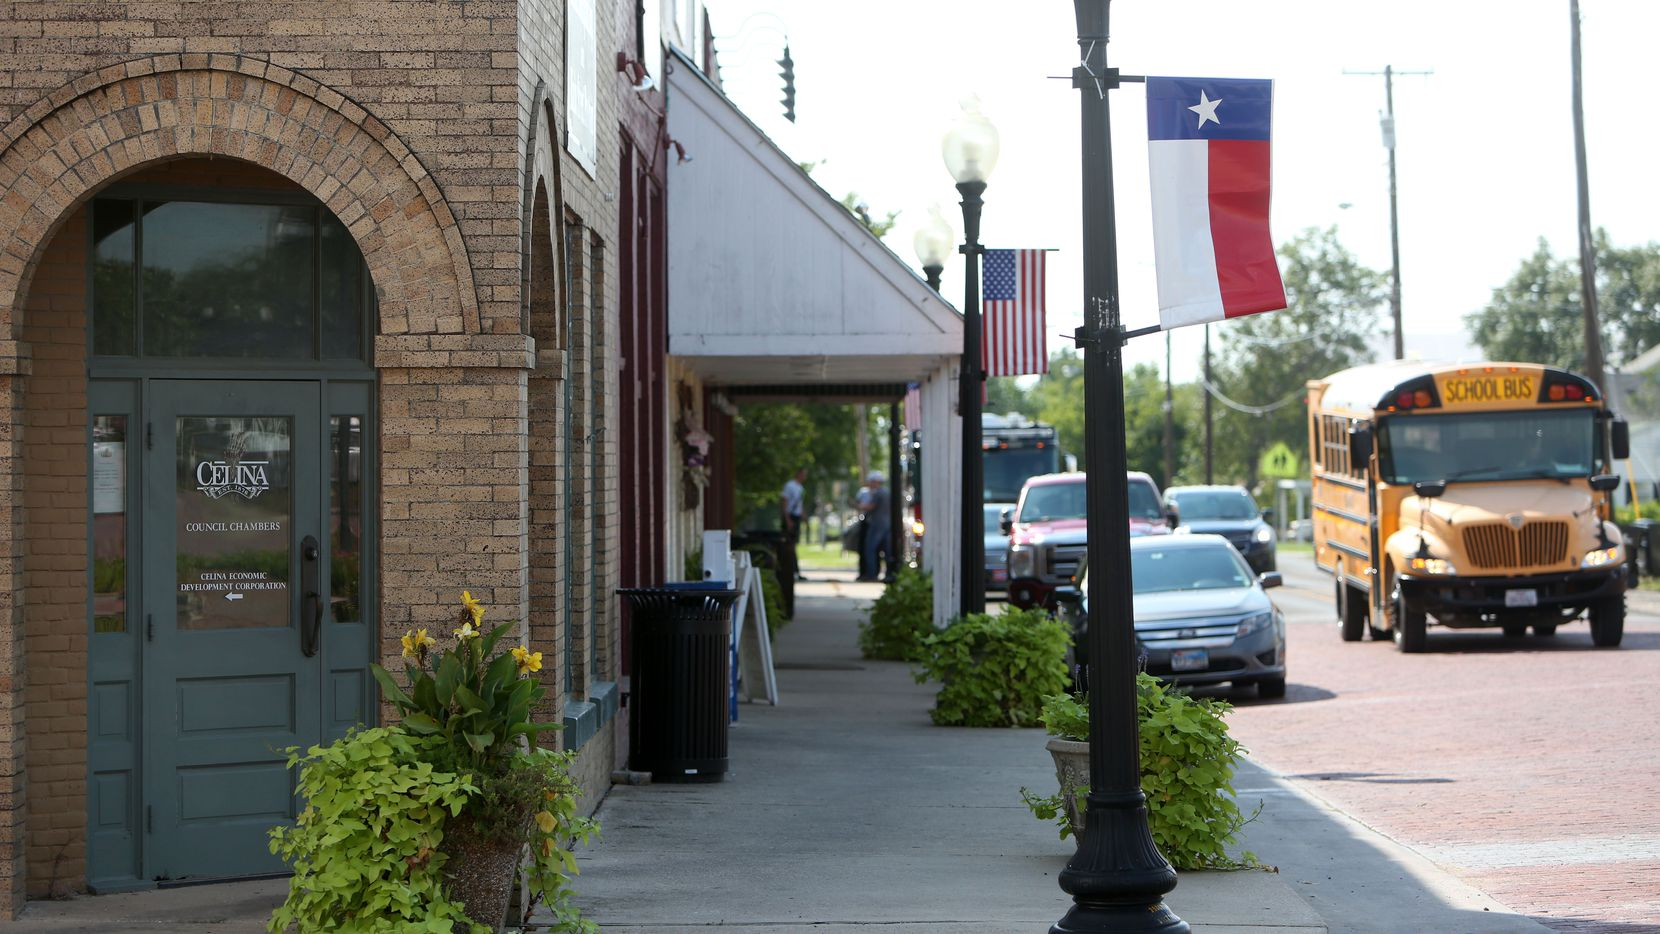 Many of the buildings surrounding Celina's century-old town square are being repurposed for shops and civic facilities.